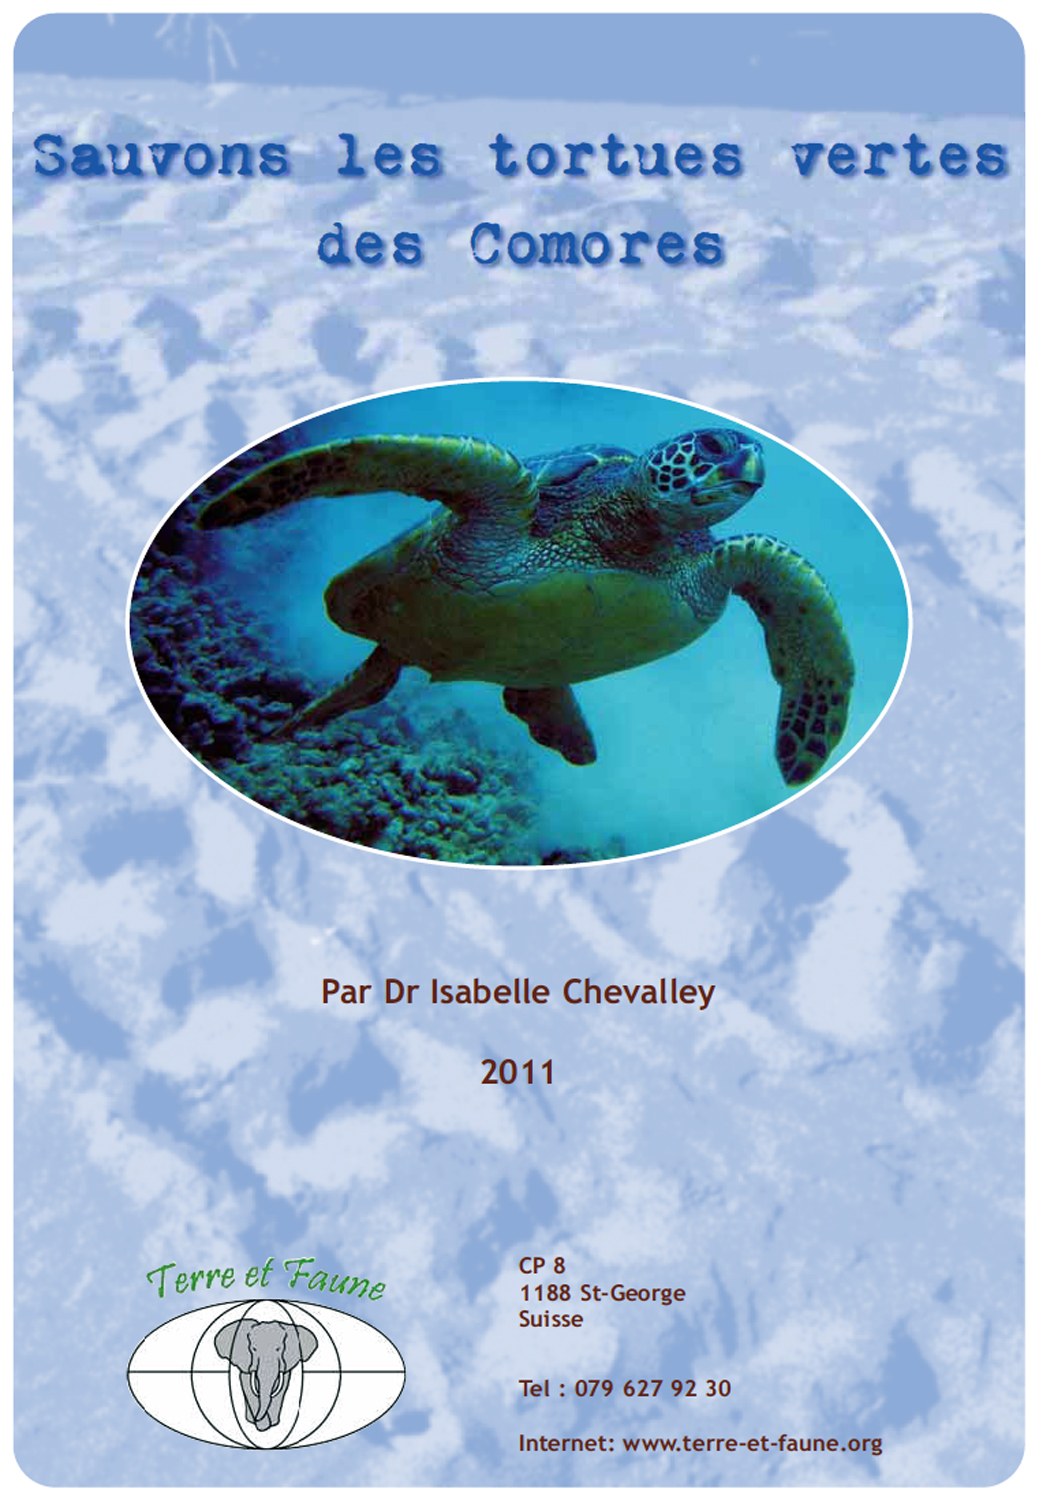 Tortues vertes 2011